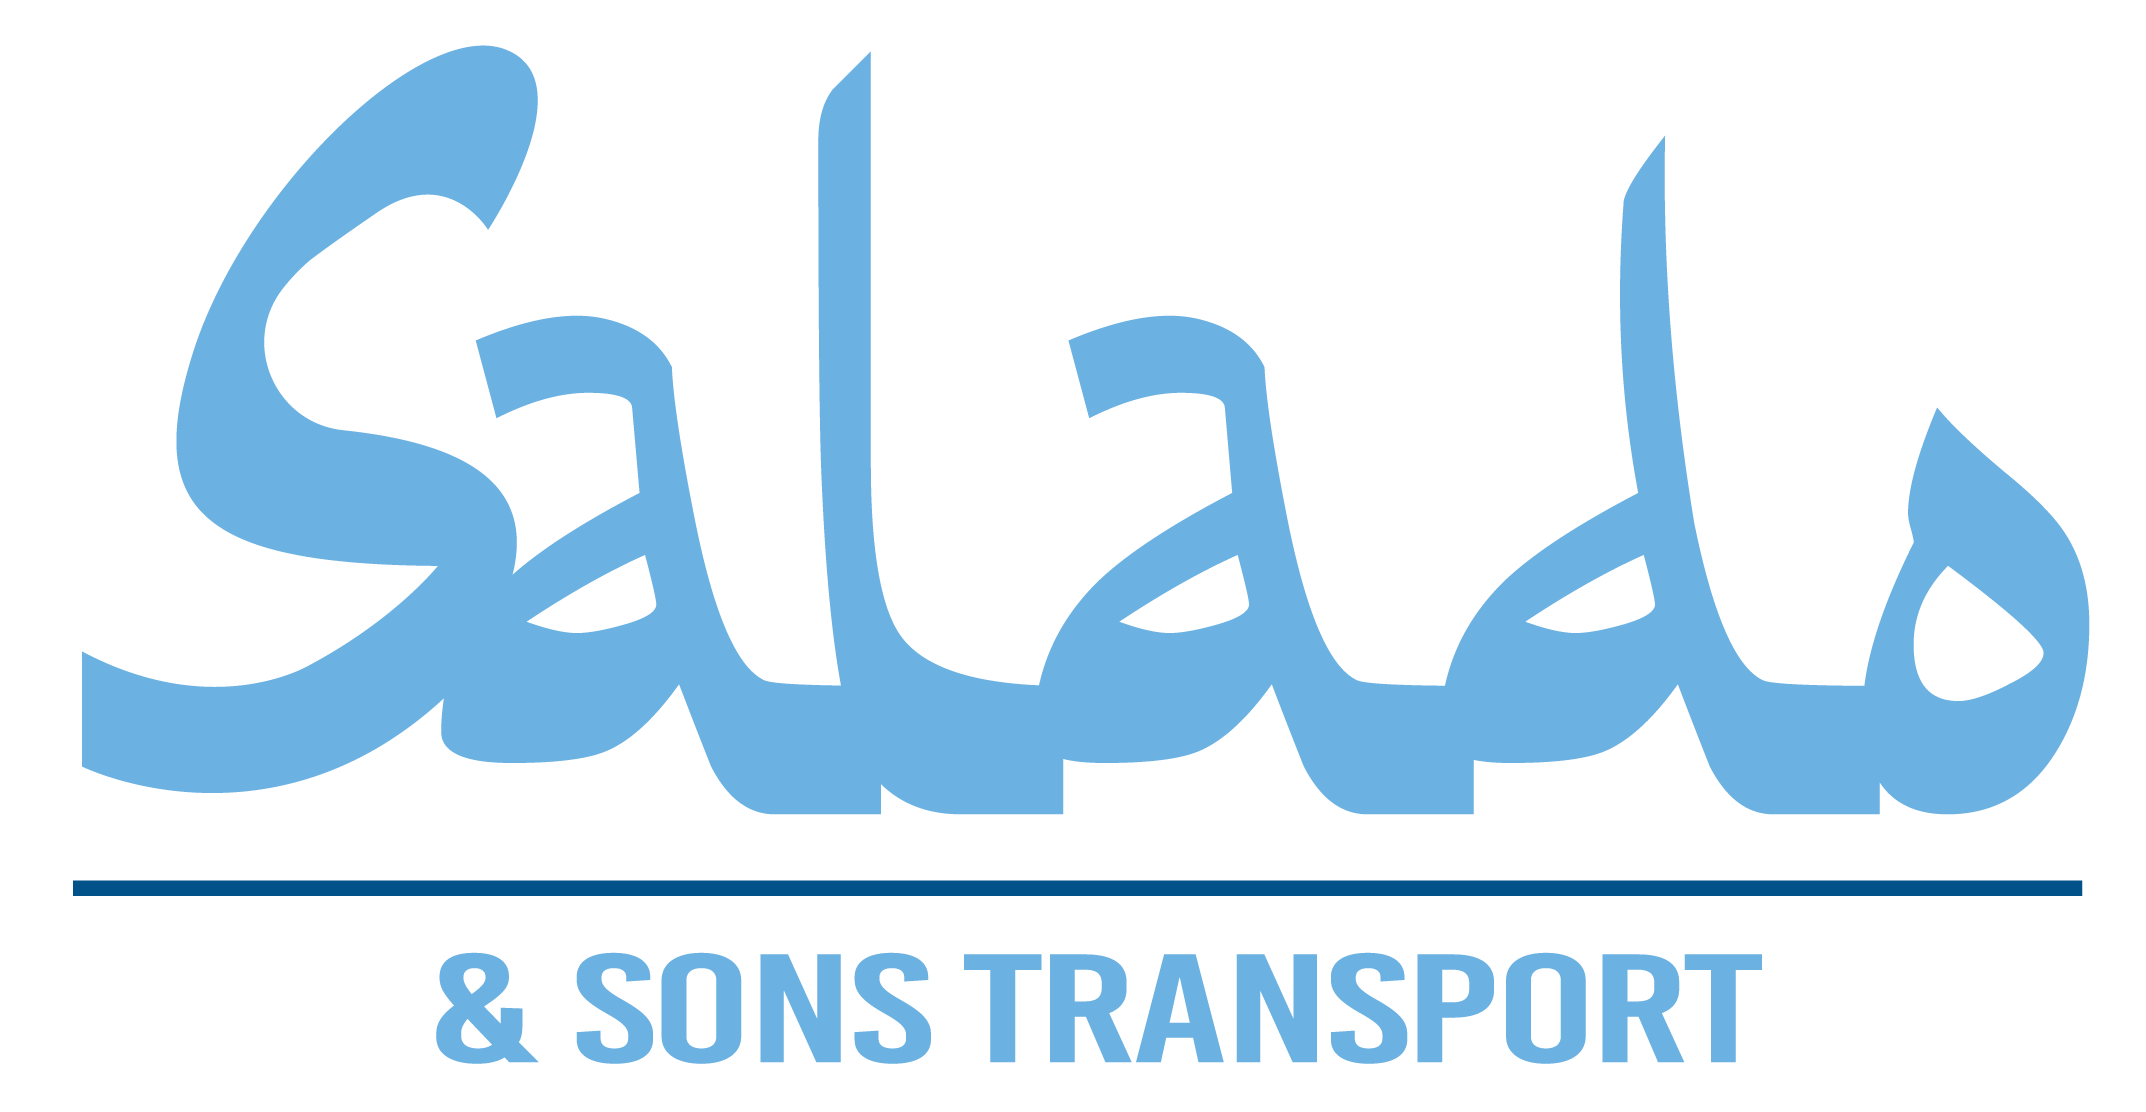 Salado Sons Transportation Trucking Companies